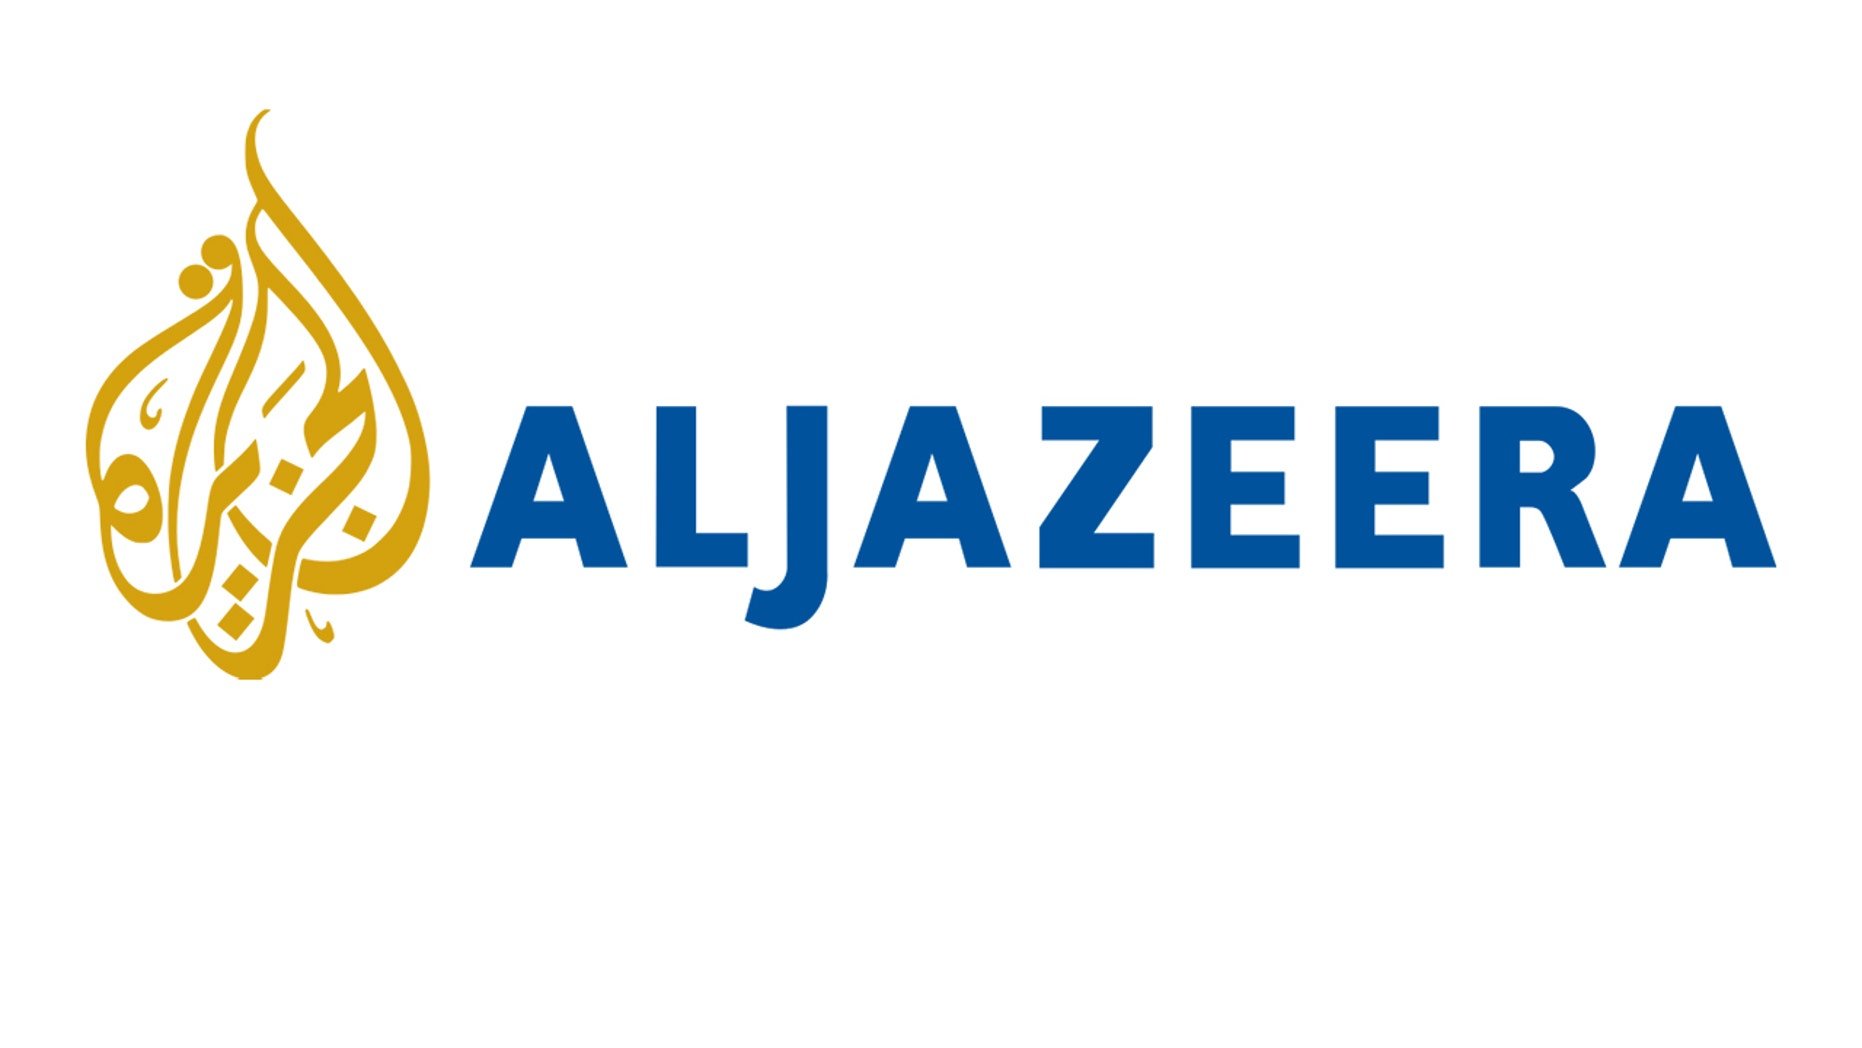 Al Jazeera Media Network suspended two journalists for a video that downplays the Holocaust.